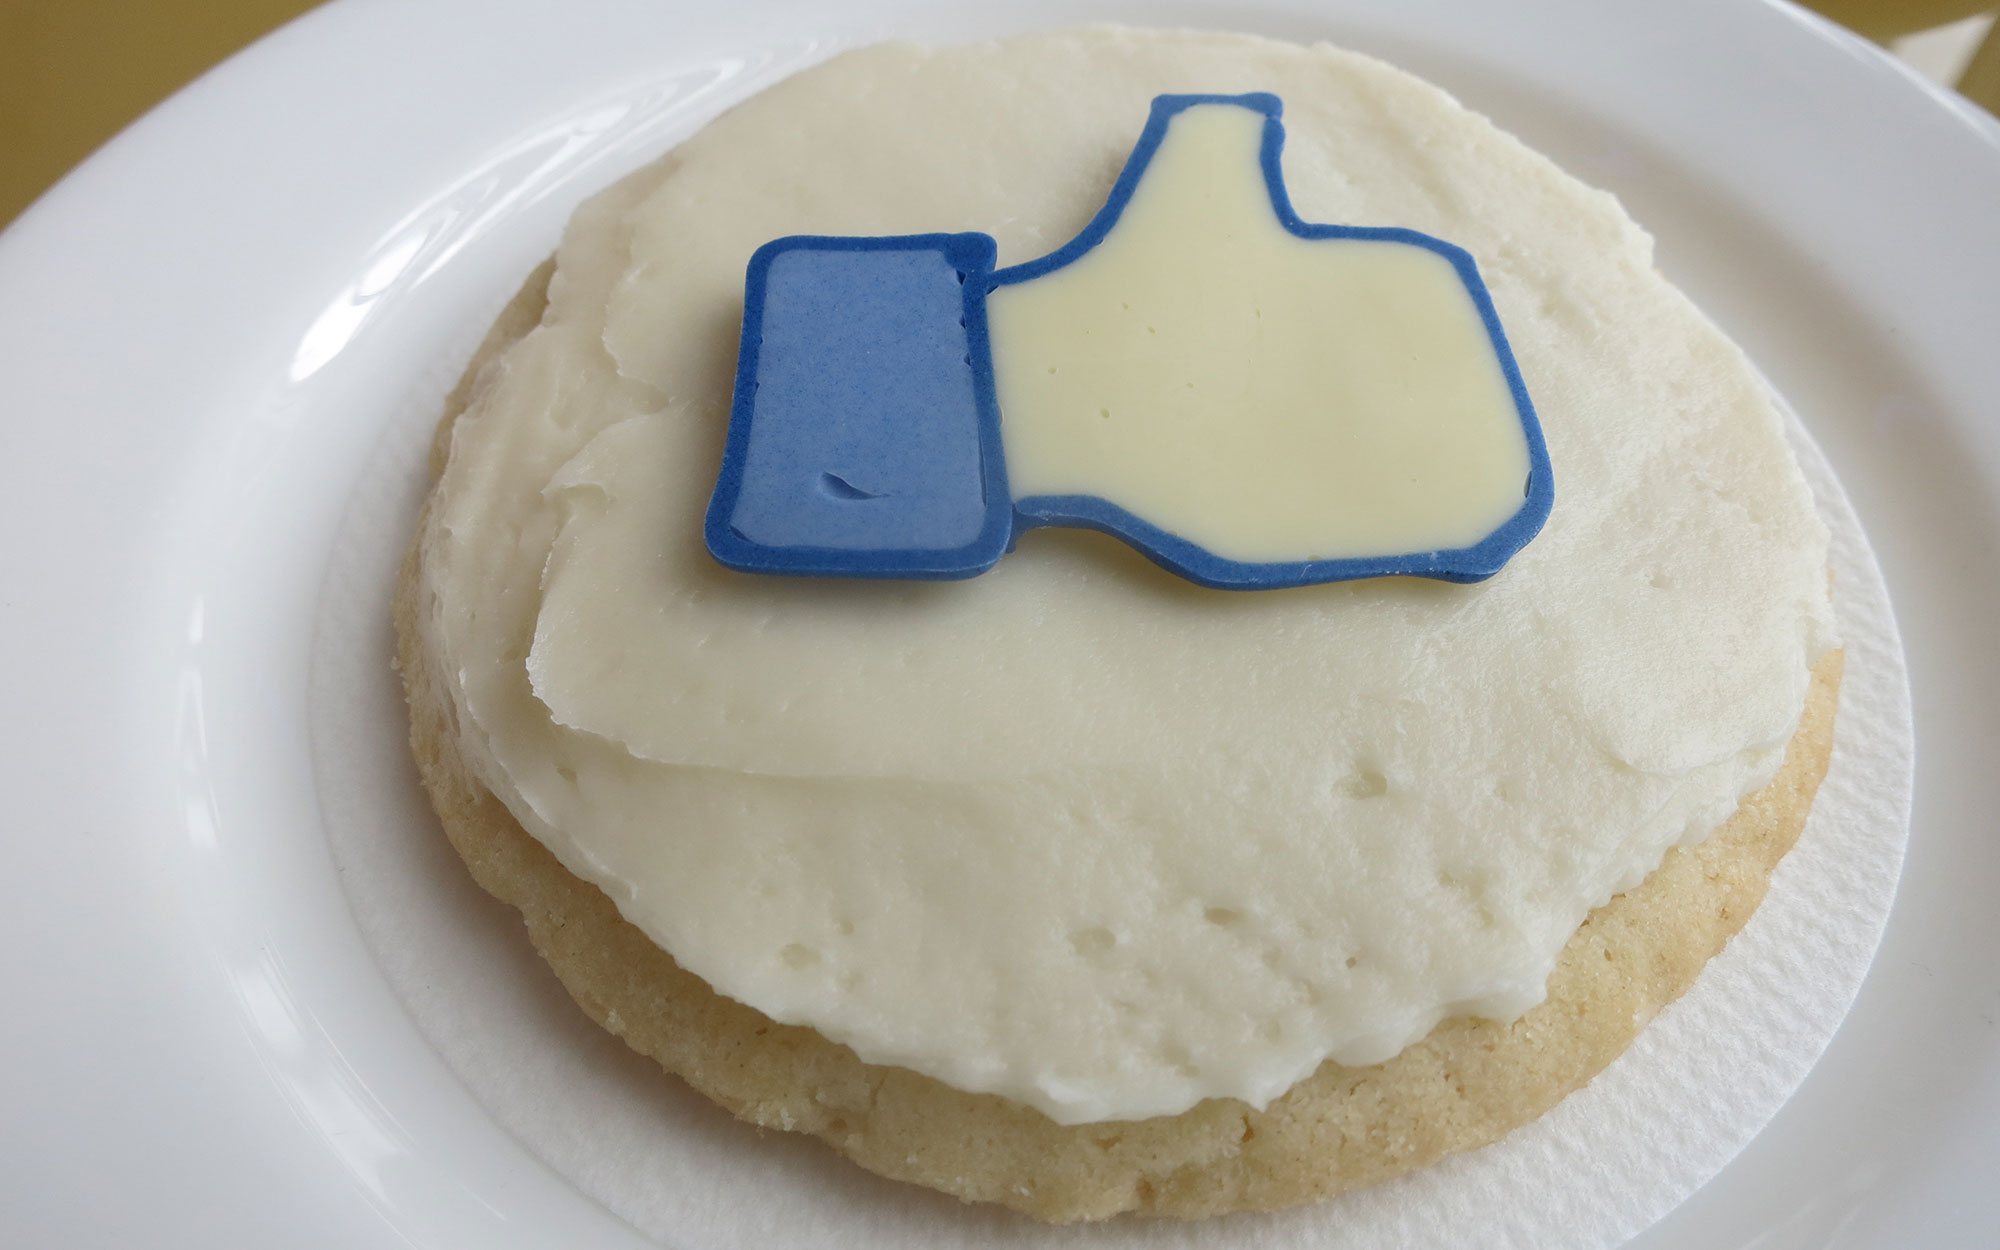 20 Secret Hotel Amenities Even the Concierge Doesn't Know About: Social Media Sugar Cookies